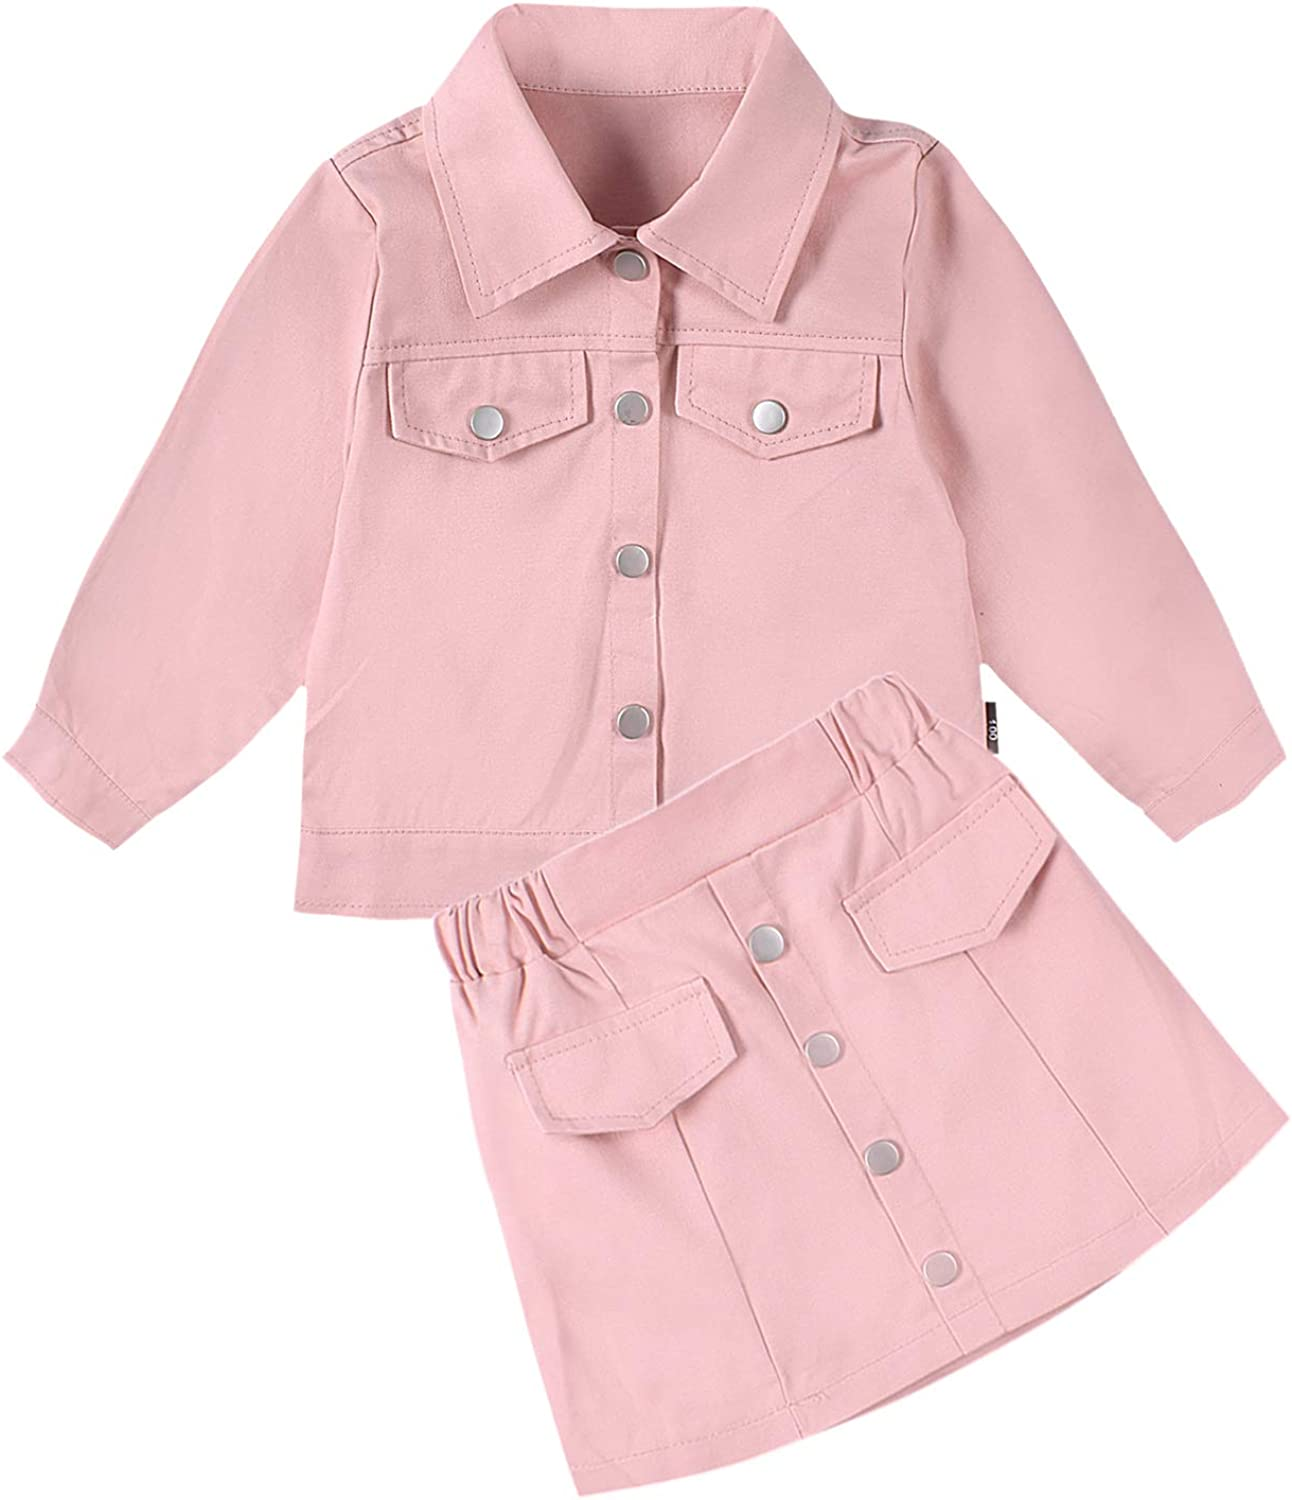 Toddler Girls Clothes Set Fall Winter Outfits 2Pcs Button Jacket Coat and Skirt Sets Pink 3T: Clothing, Shoes & Jewelry